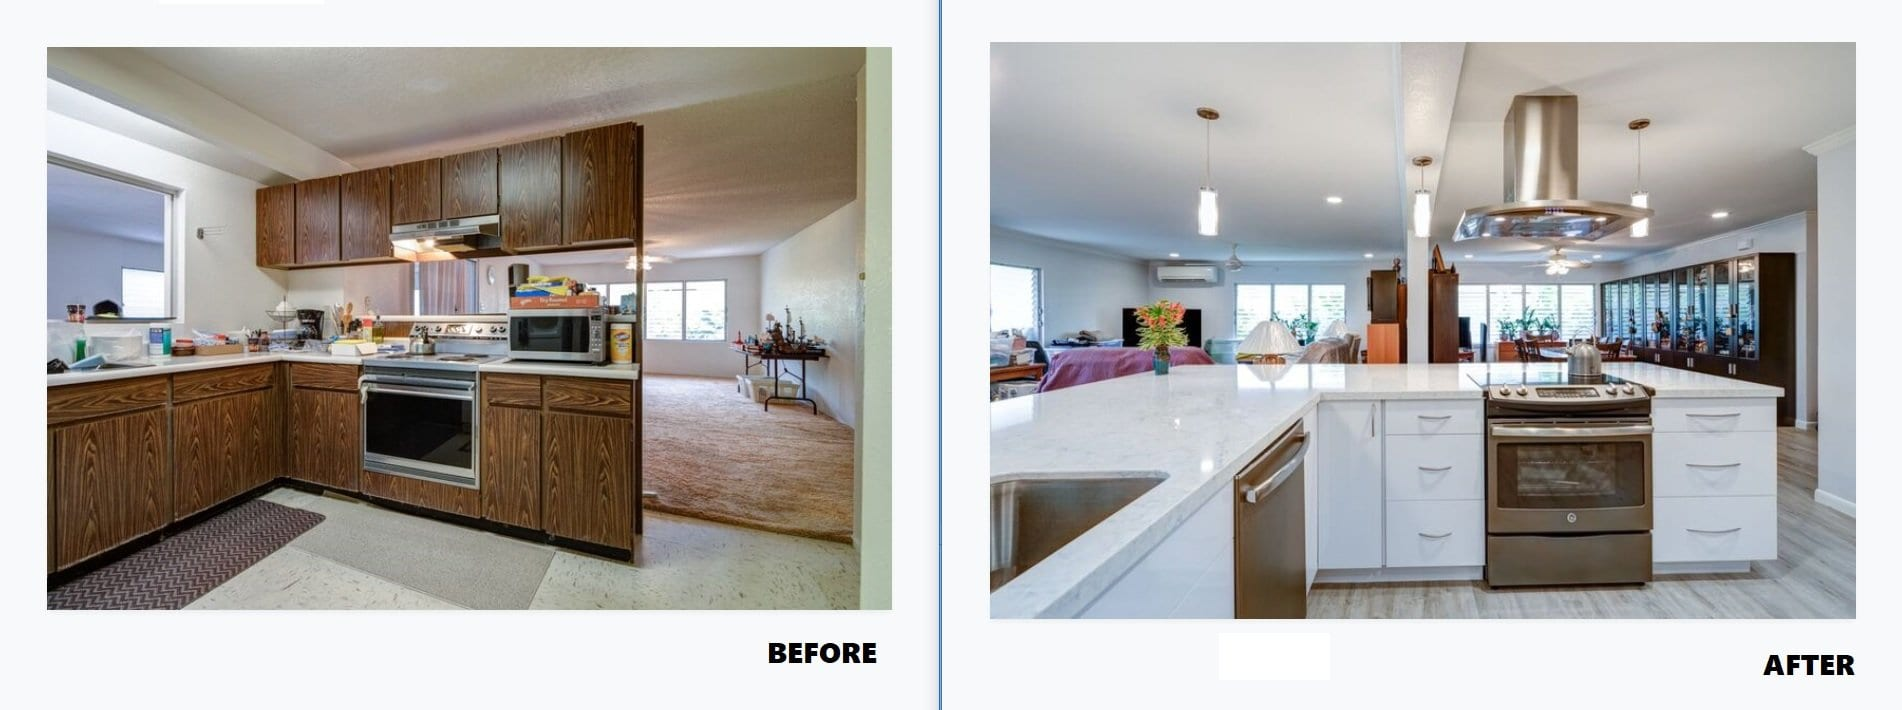 Mililani Makeover Before & After